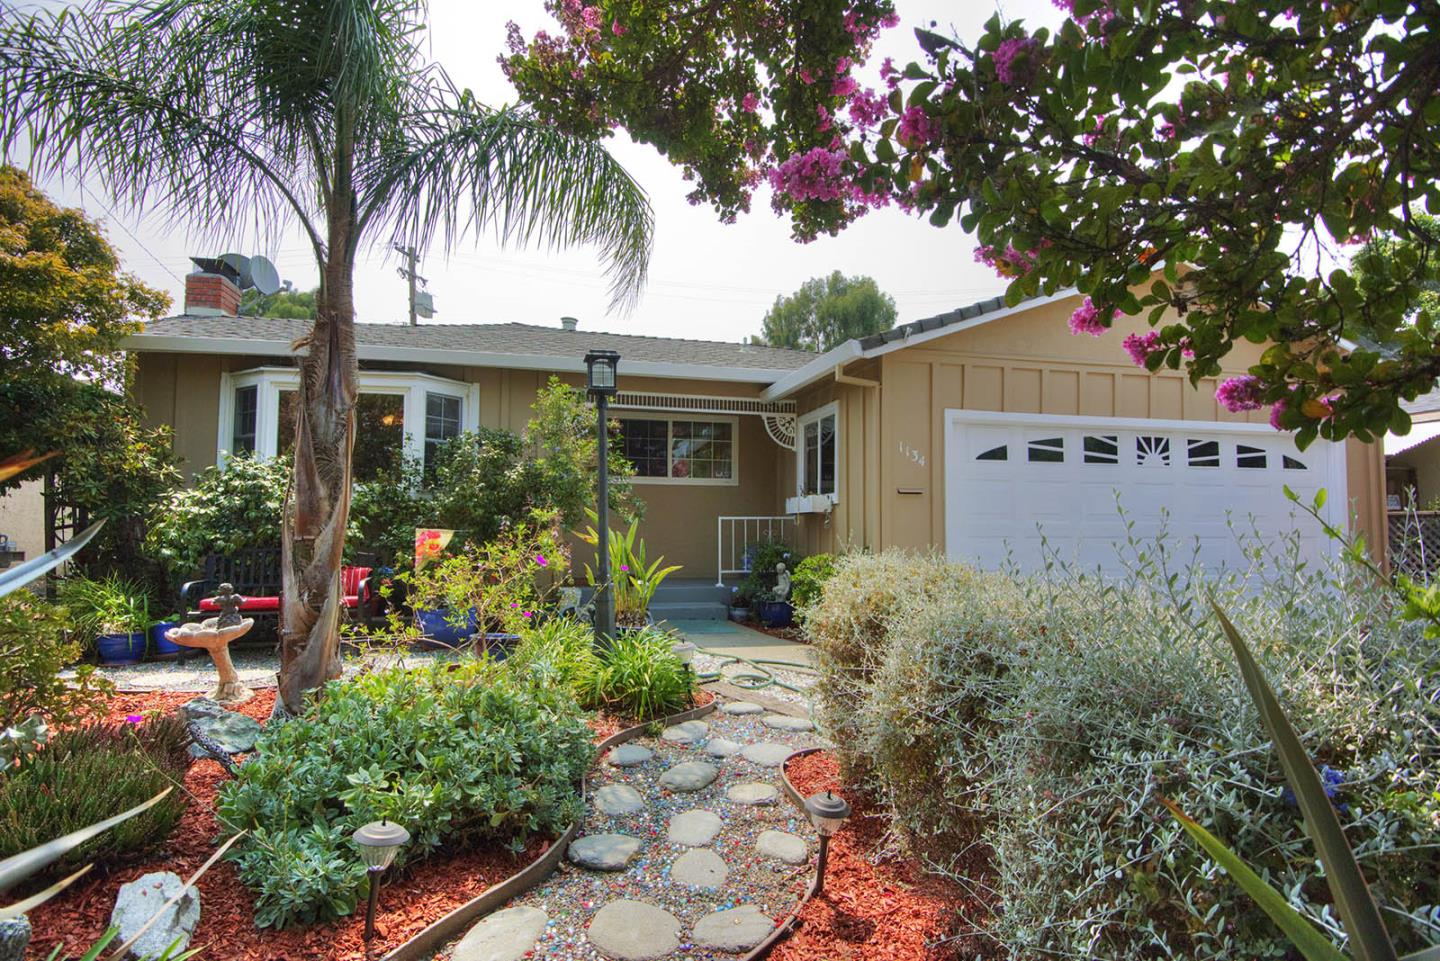 1134 Park Grove Dr Milpitas Ca 95035 Mls 81720344 Coldwell